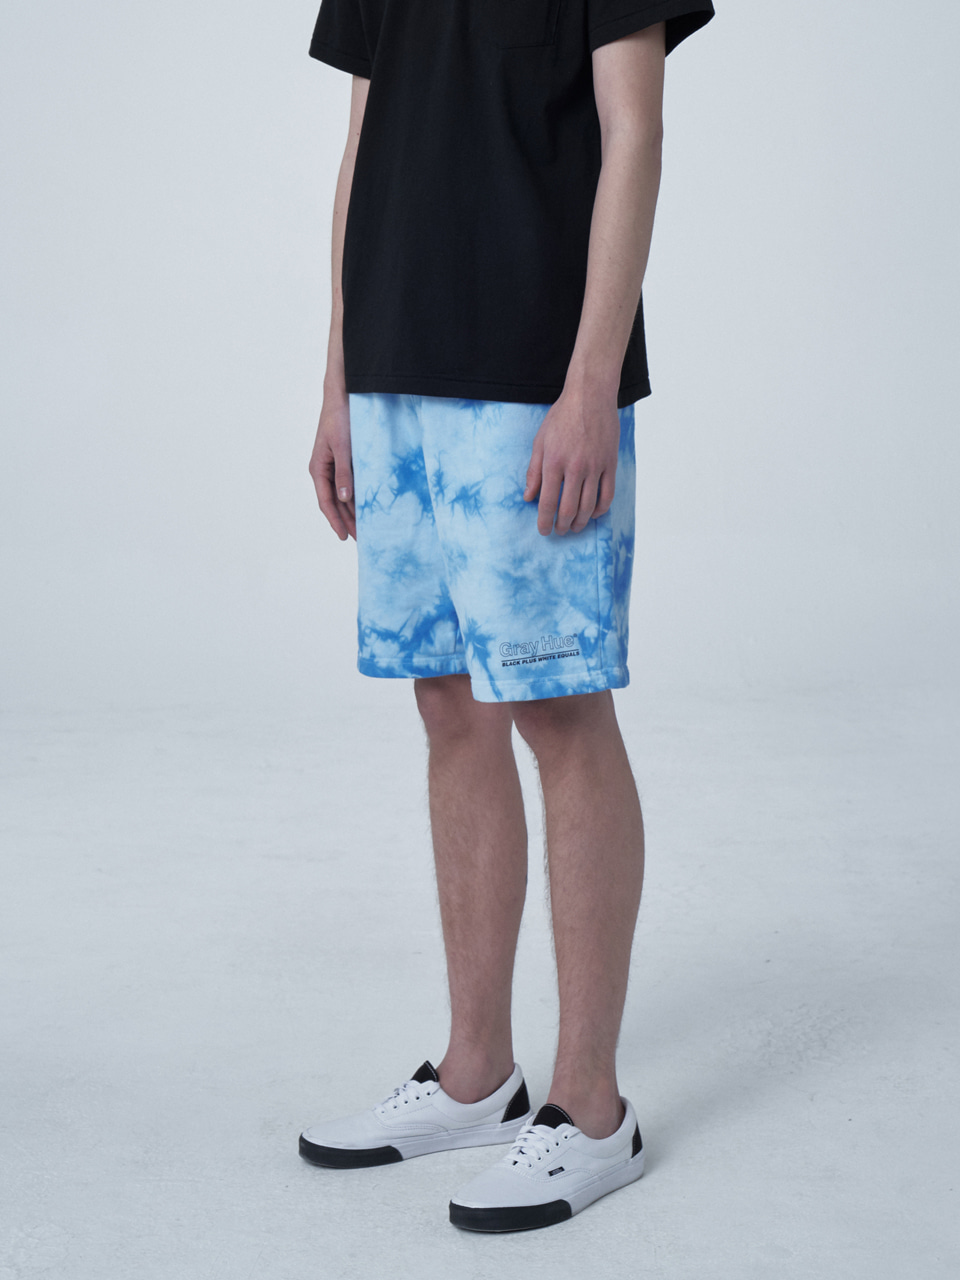 그레이휴MARBLE TIE DYED SHORTS light blue